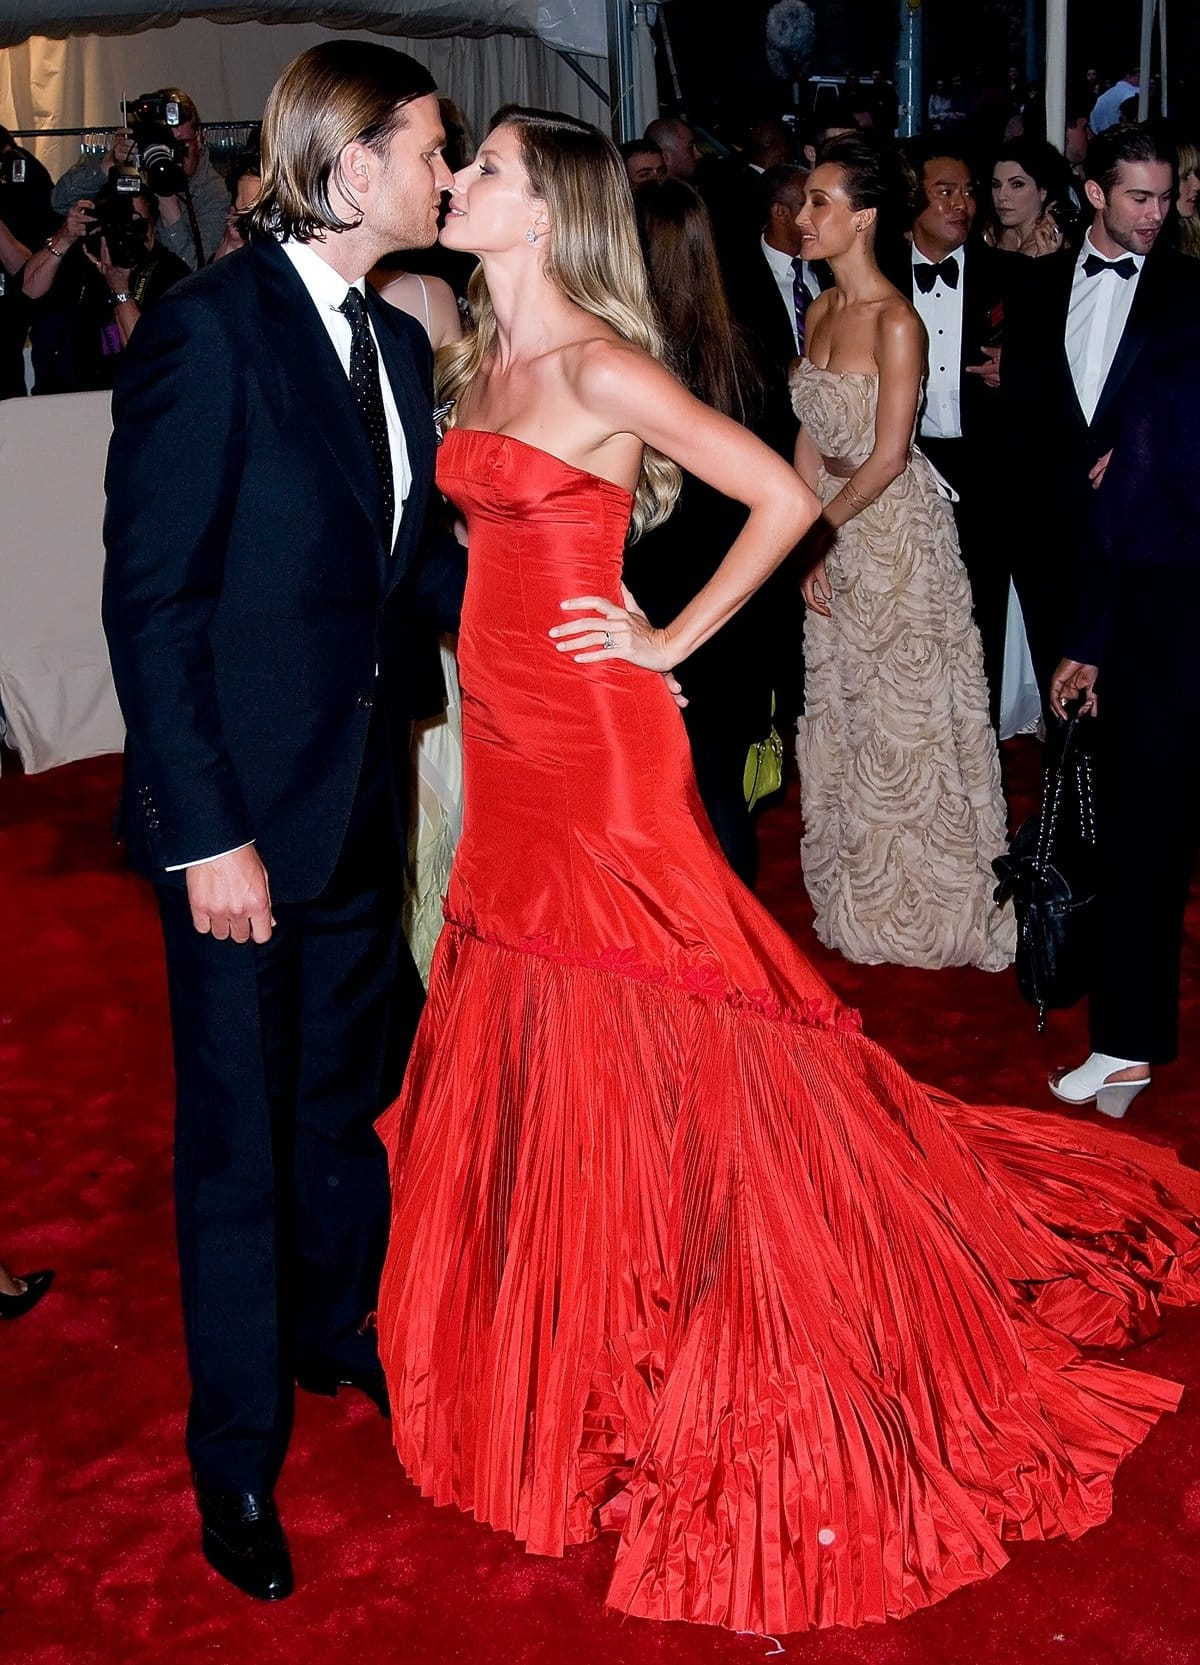 Gisele Bündchen in a red strapless Alexander McQueen Fall 2005 red fish-tail dress kissing Tom Brady at the 2011 Met Gala